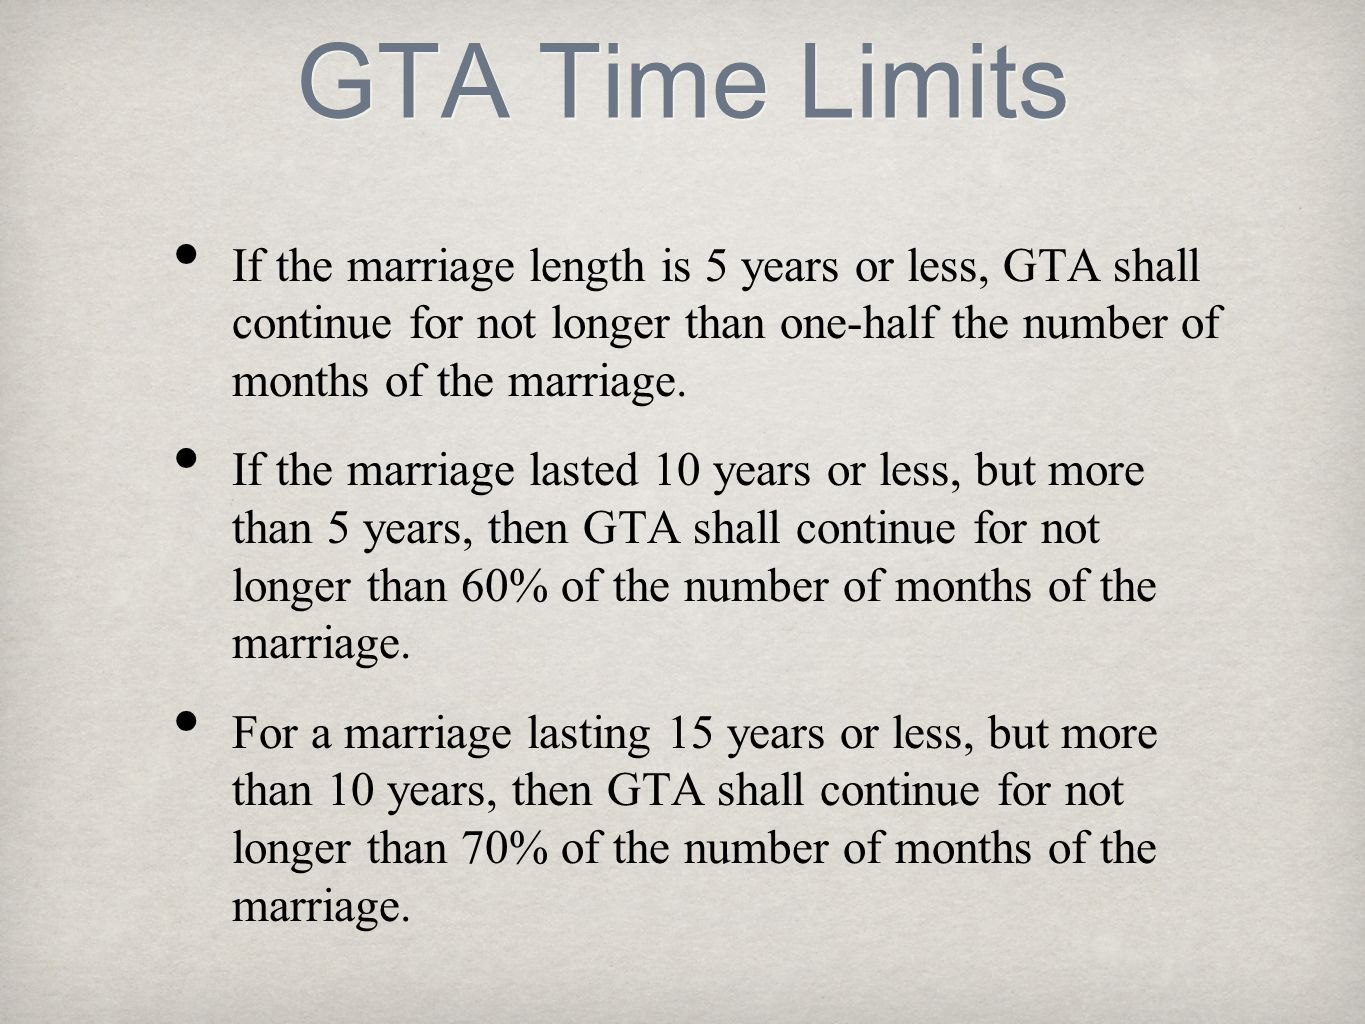 GTA Time Limits If the marriage length is 5 years or less, GTA shall continue for not longer than one-half the number of months of the marriage.